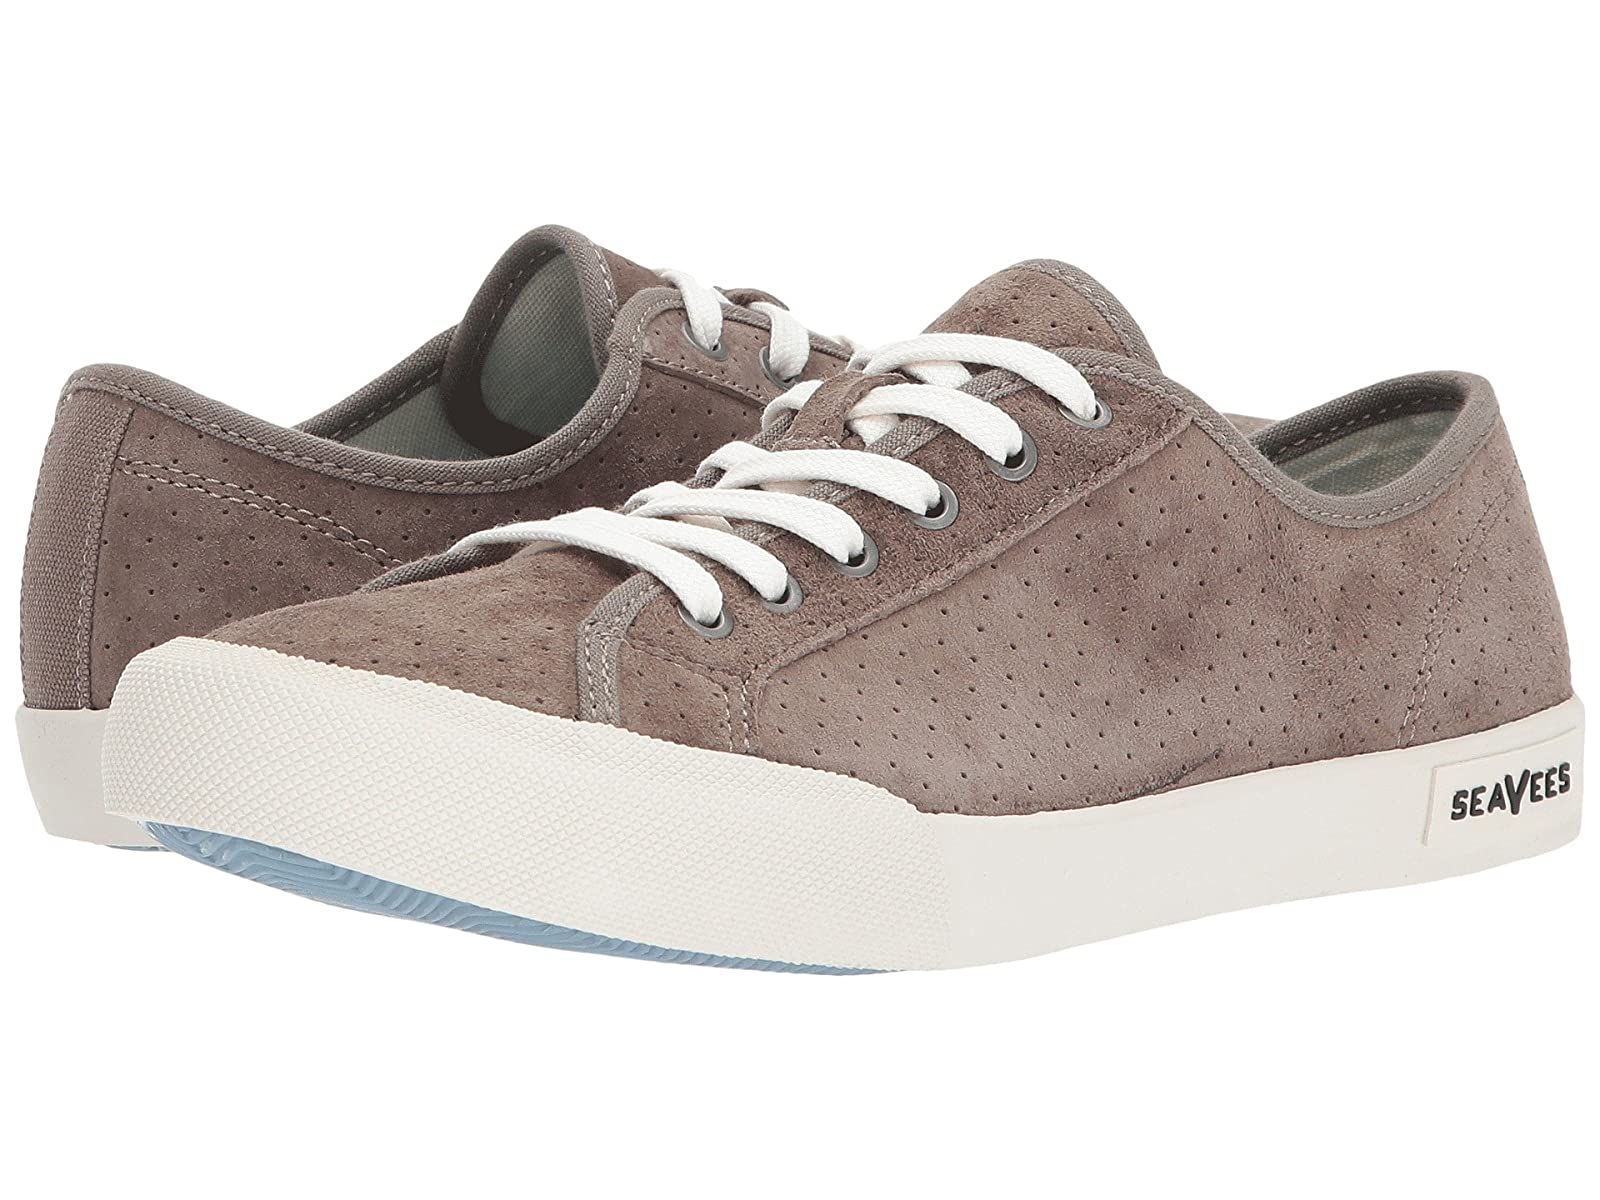 SeaVees Monterey Sneaker VarsityCheap and distinctive eye-catching shoes